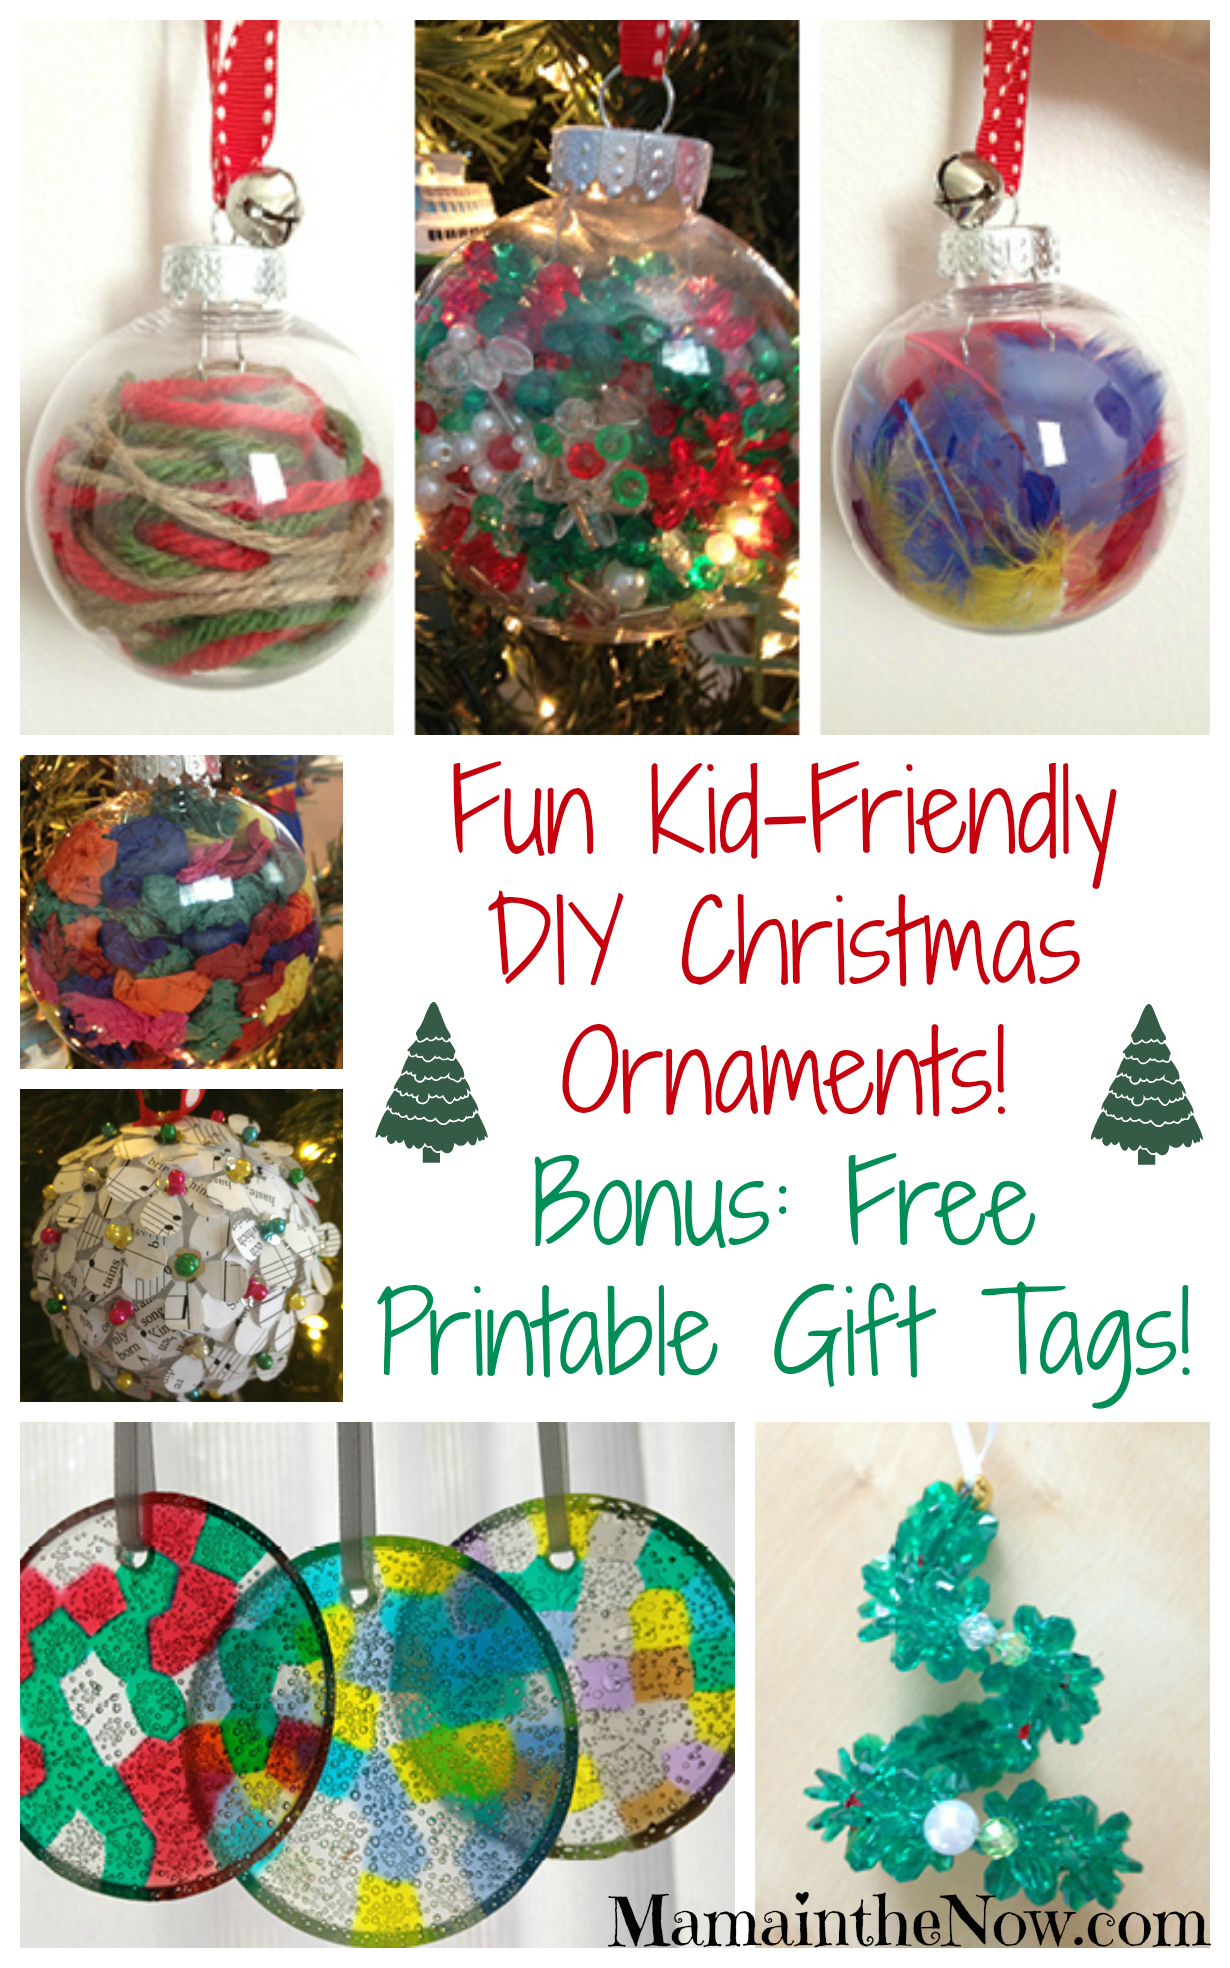 Diy christmas decorations 2014 - Christmas Tree Ideas For Kids 9 Shatterproof Kid Friendly Christmas Ornaments Martha Stewart